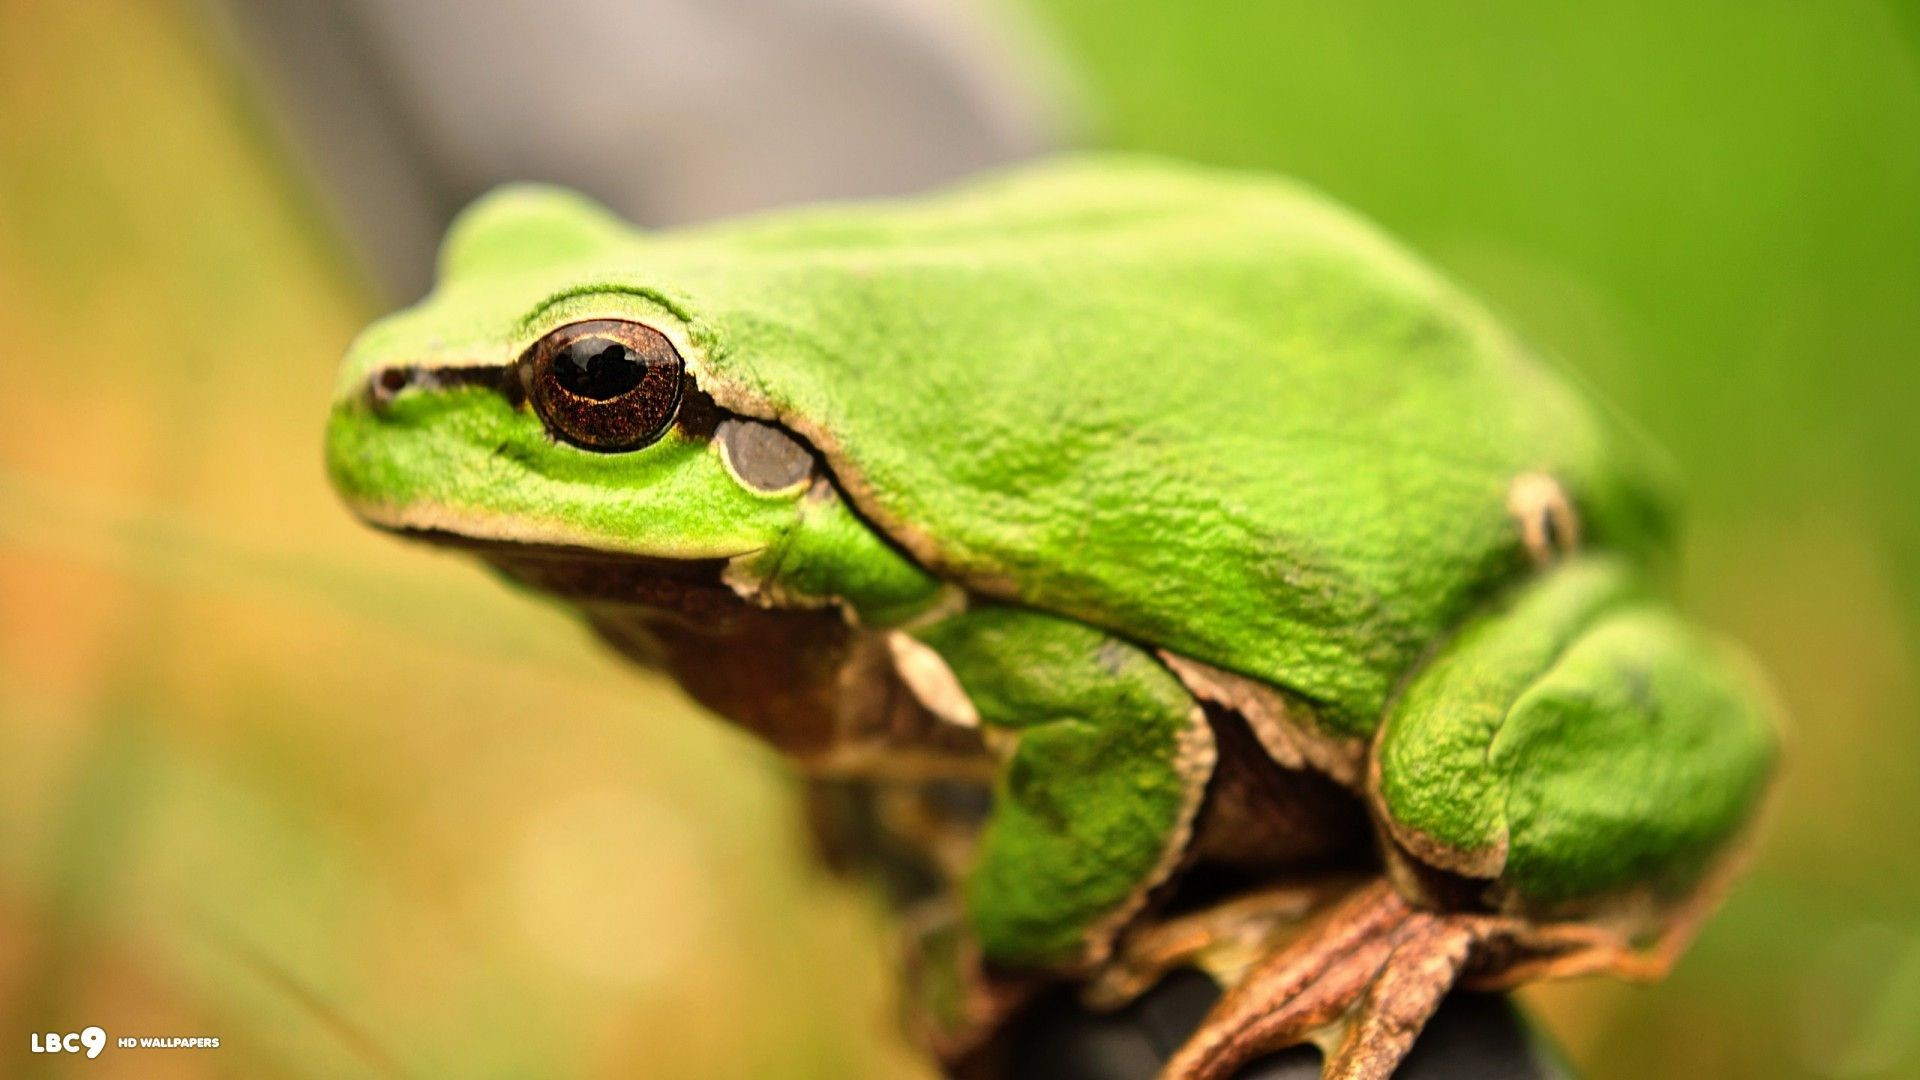 Res: 1920x1080, frog wallpaper 1/86 | reptiles and amphibians hd backgrounds